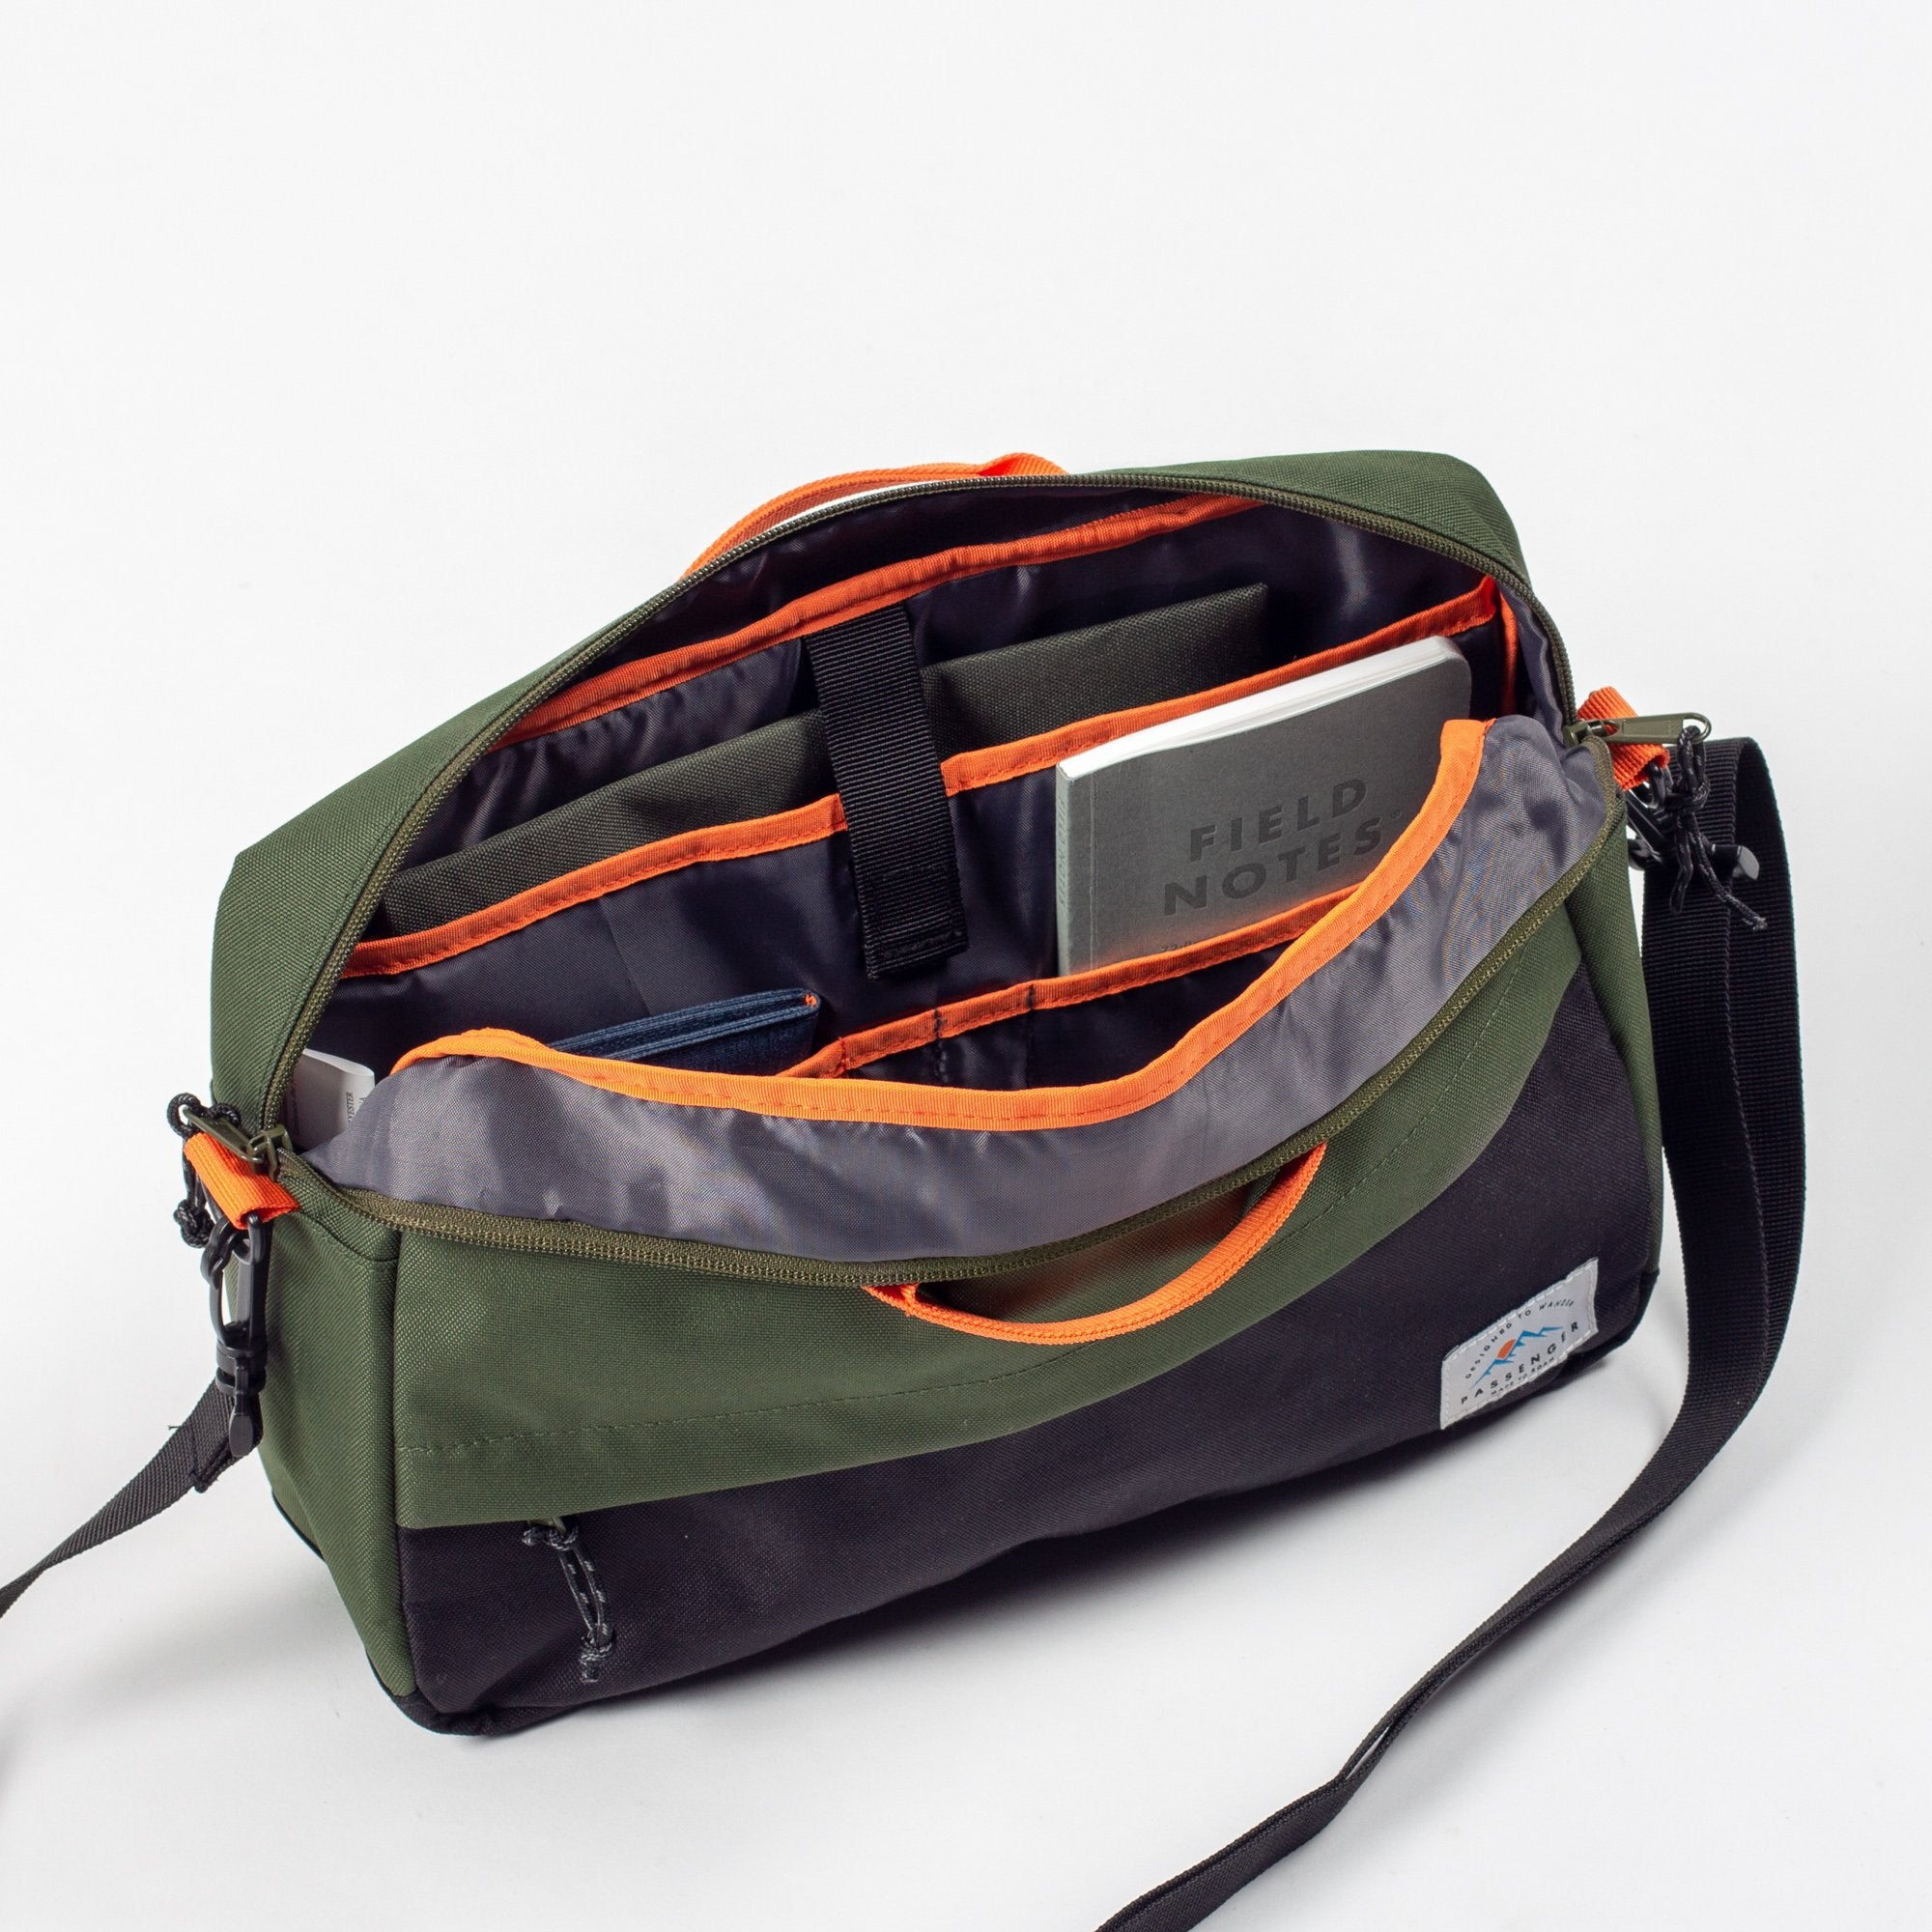 Ranger Essentials Pack - Olive/Black image 7